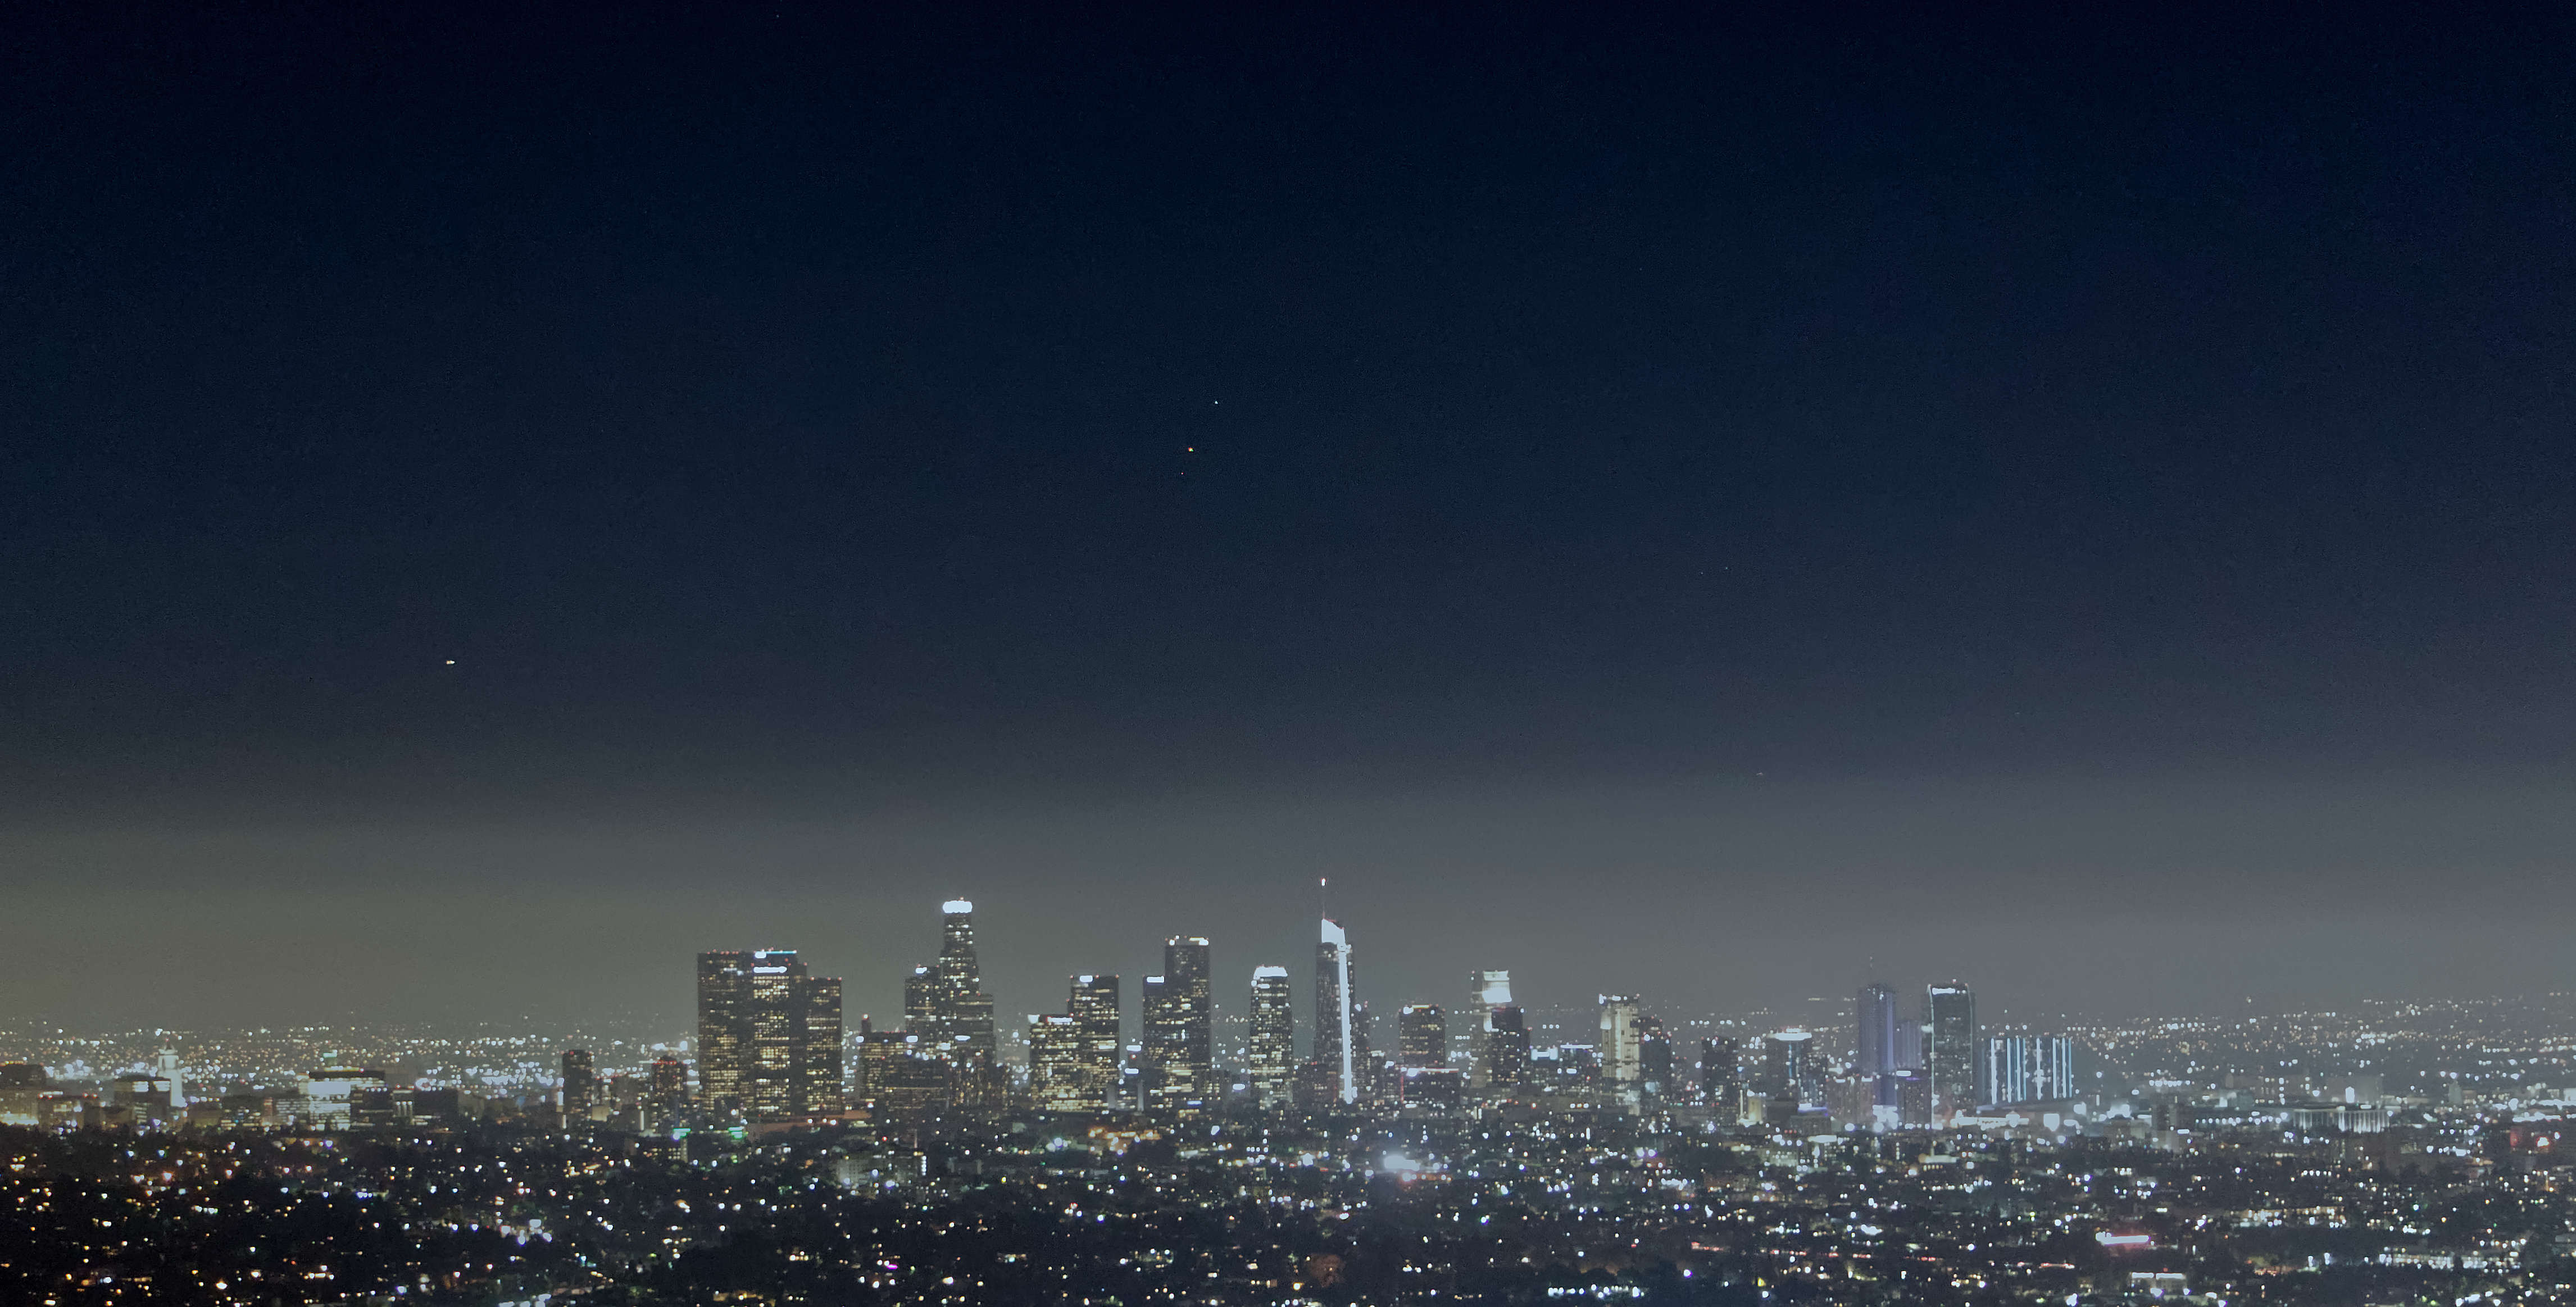 View of downtown Los Angeles, as seen from the Griffith Observatory